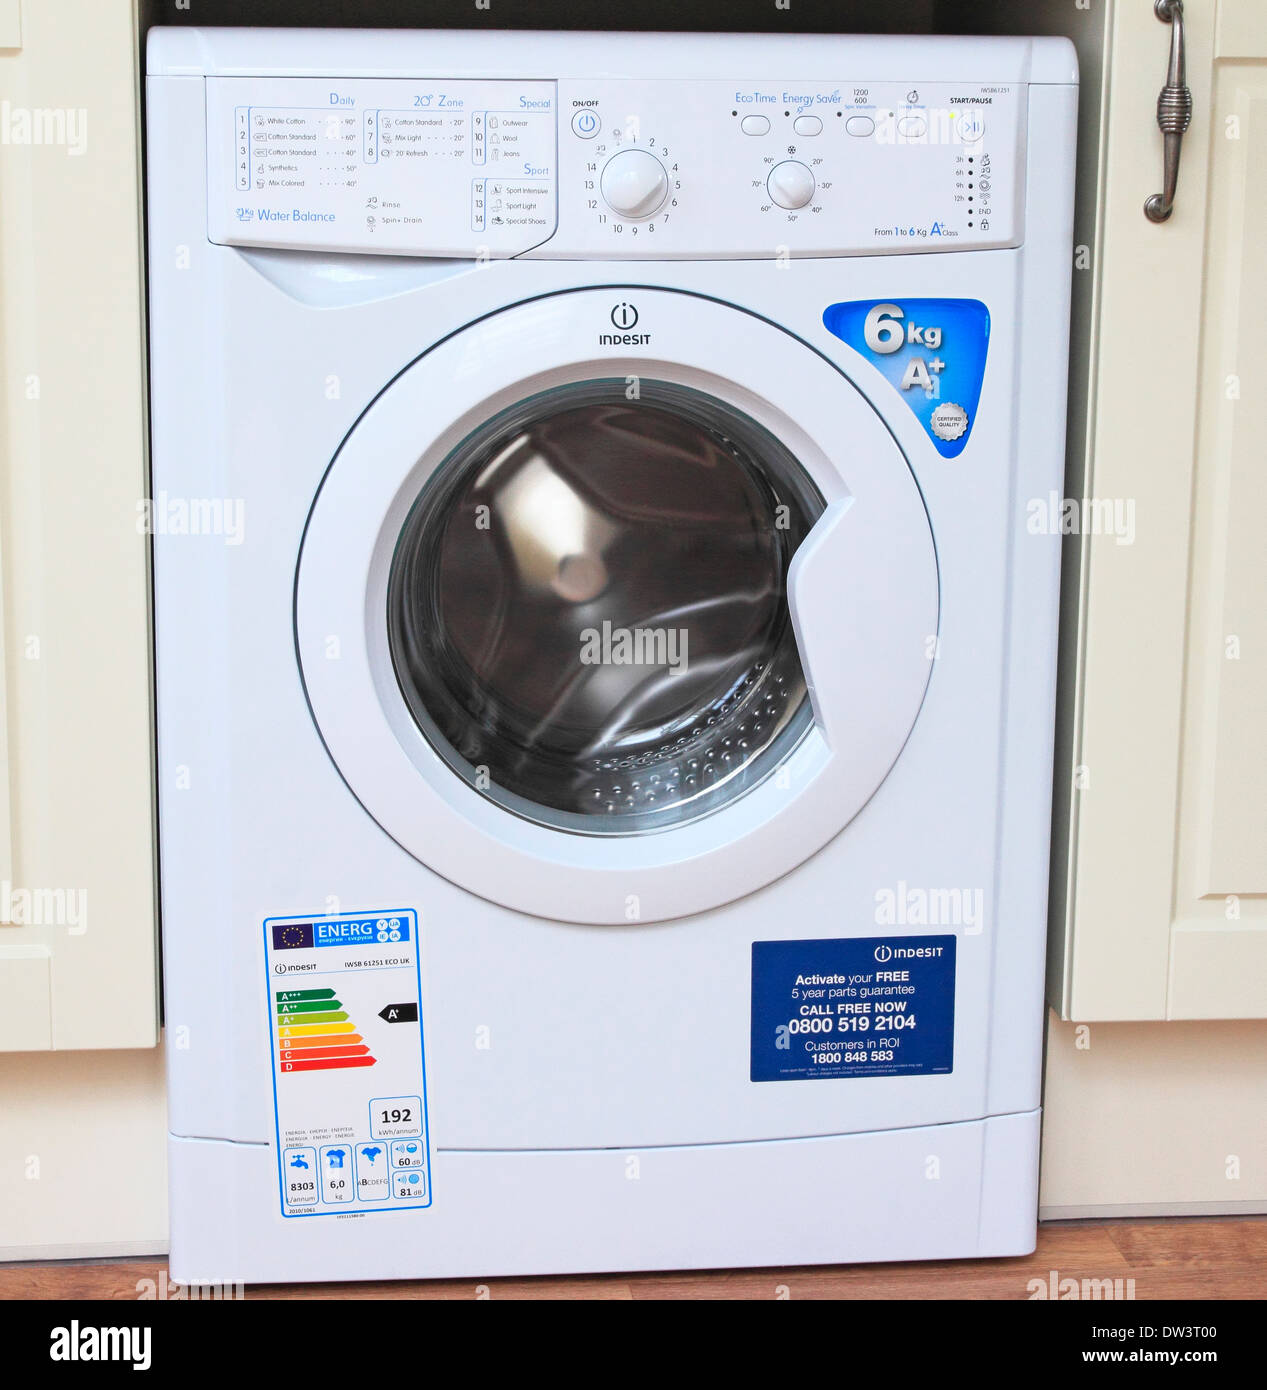 indesit washing machine wiring diagram electric washing machines stock photos   electric washing machines  electric washing machines stock photos